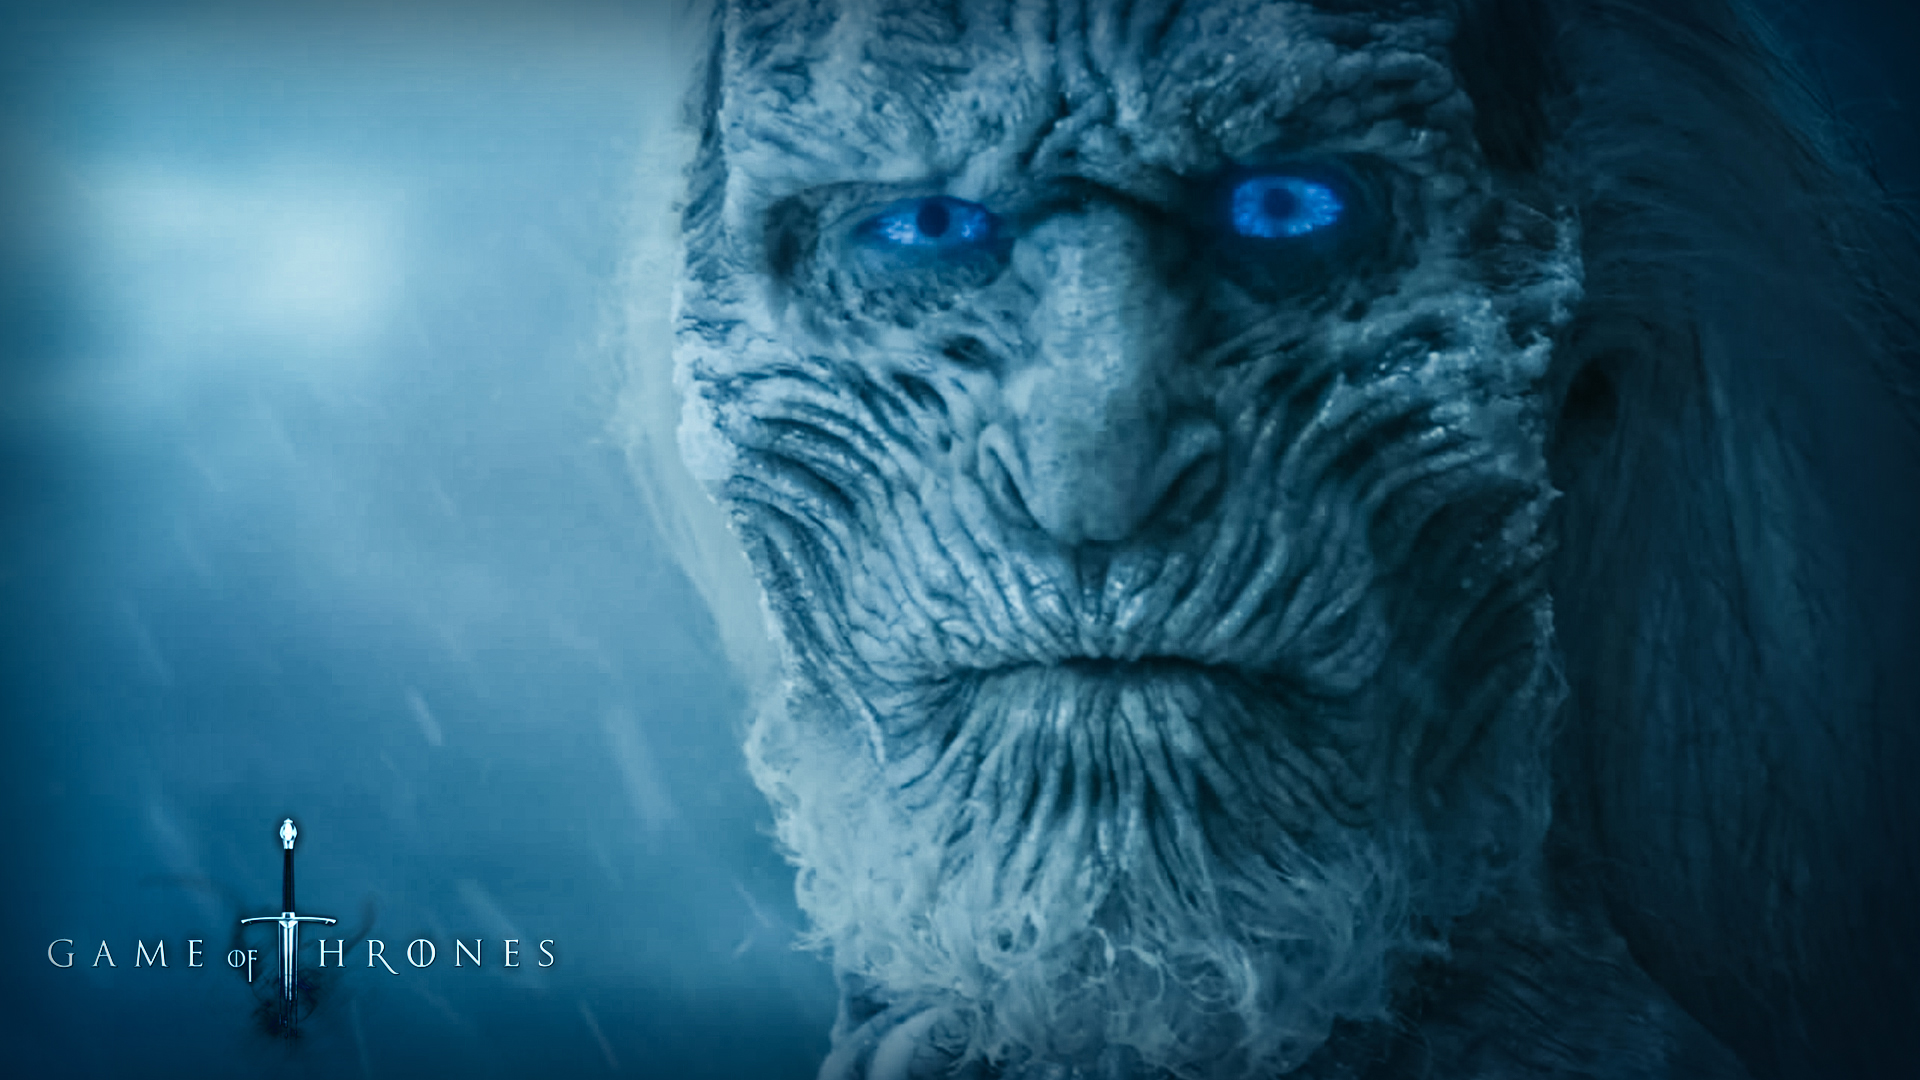 Some Awesome Game Of Thrones Wallpaper 1920x1080